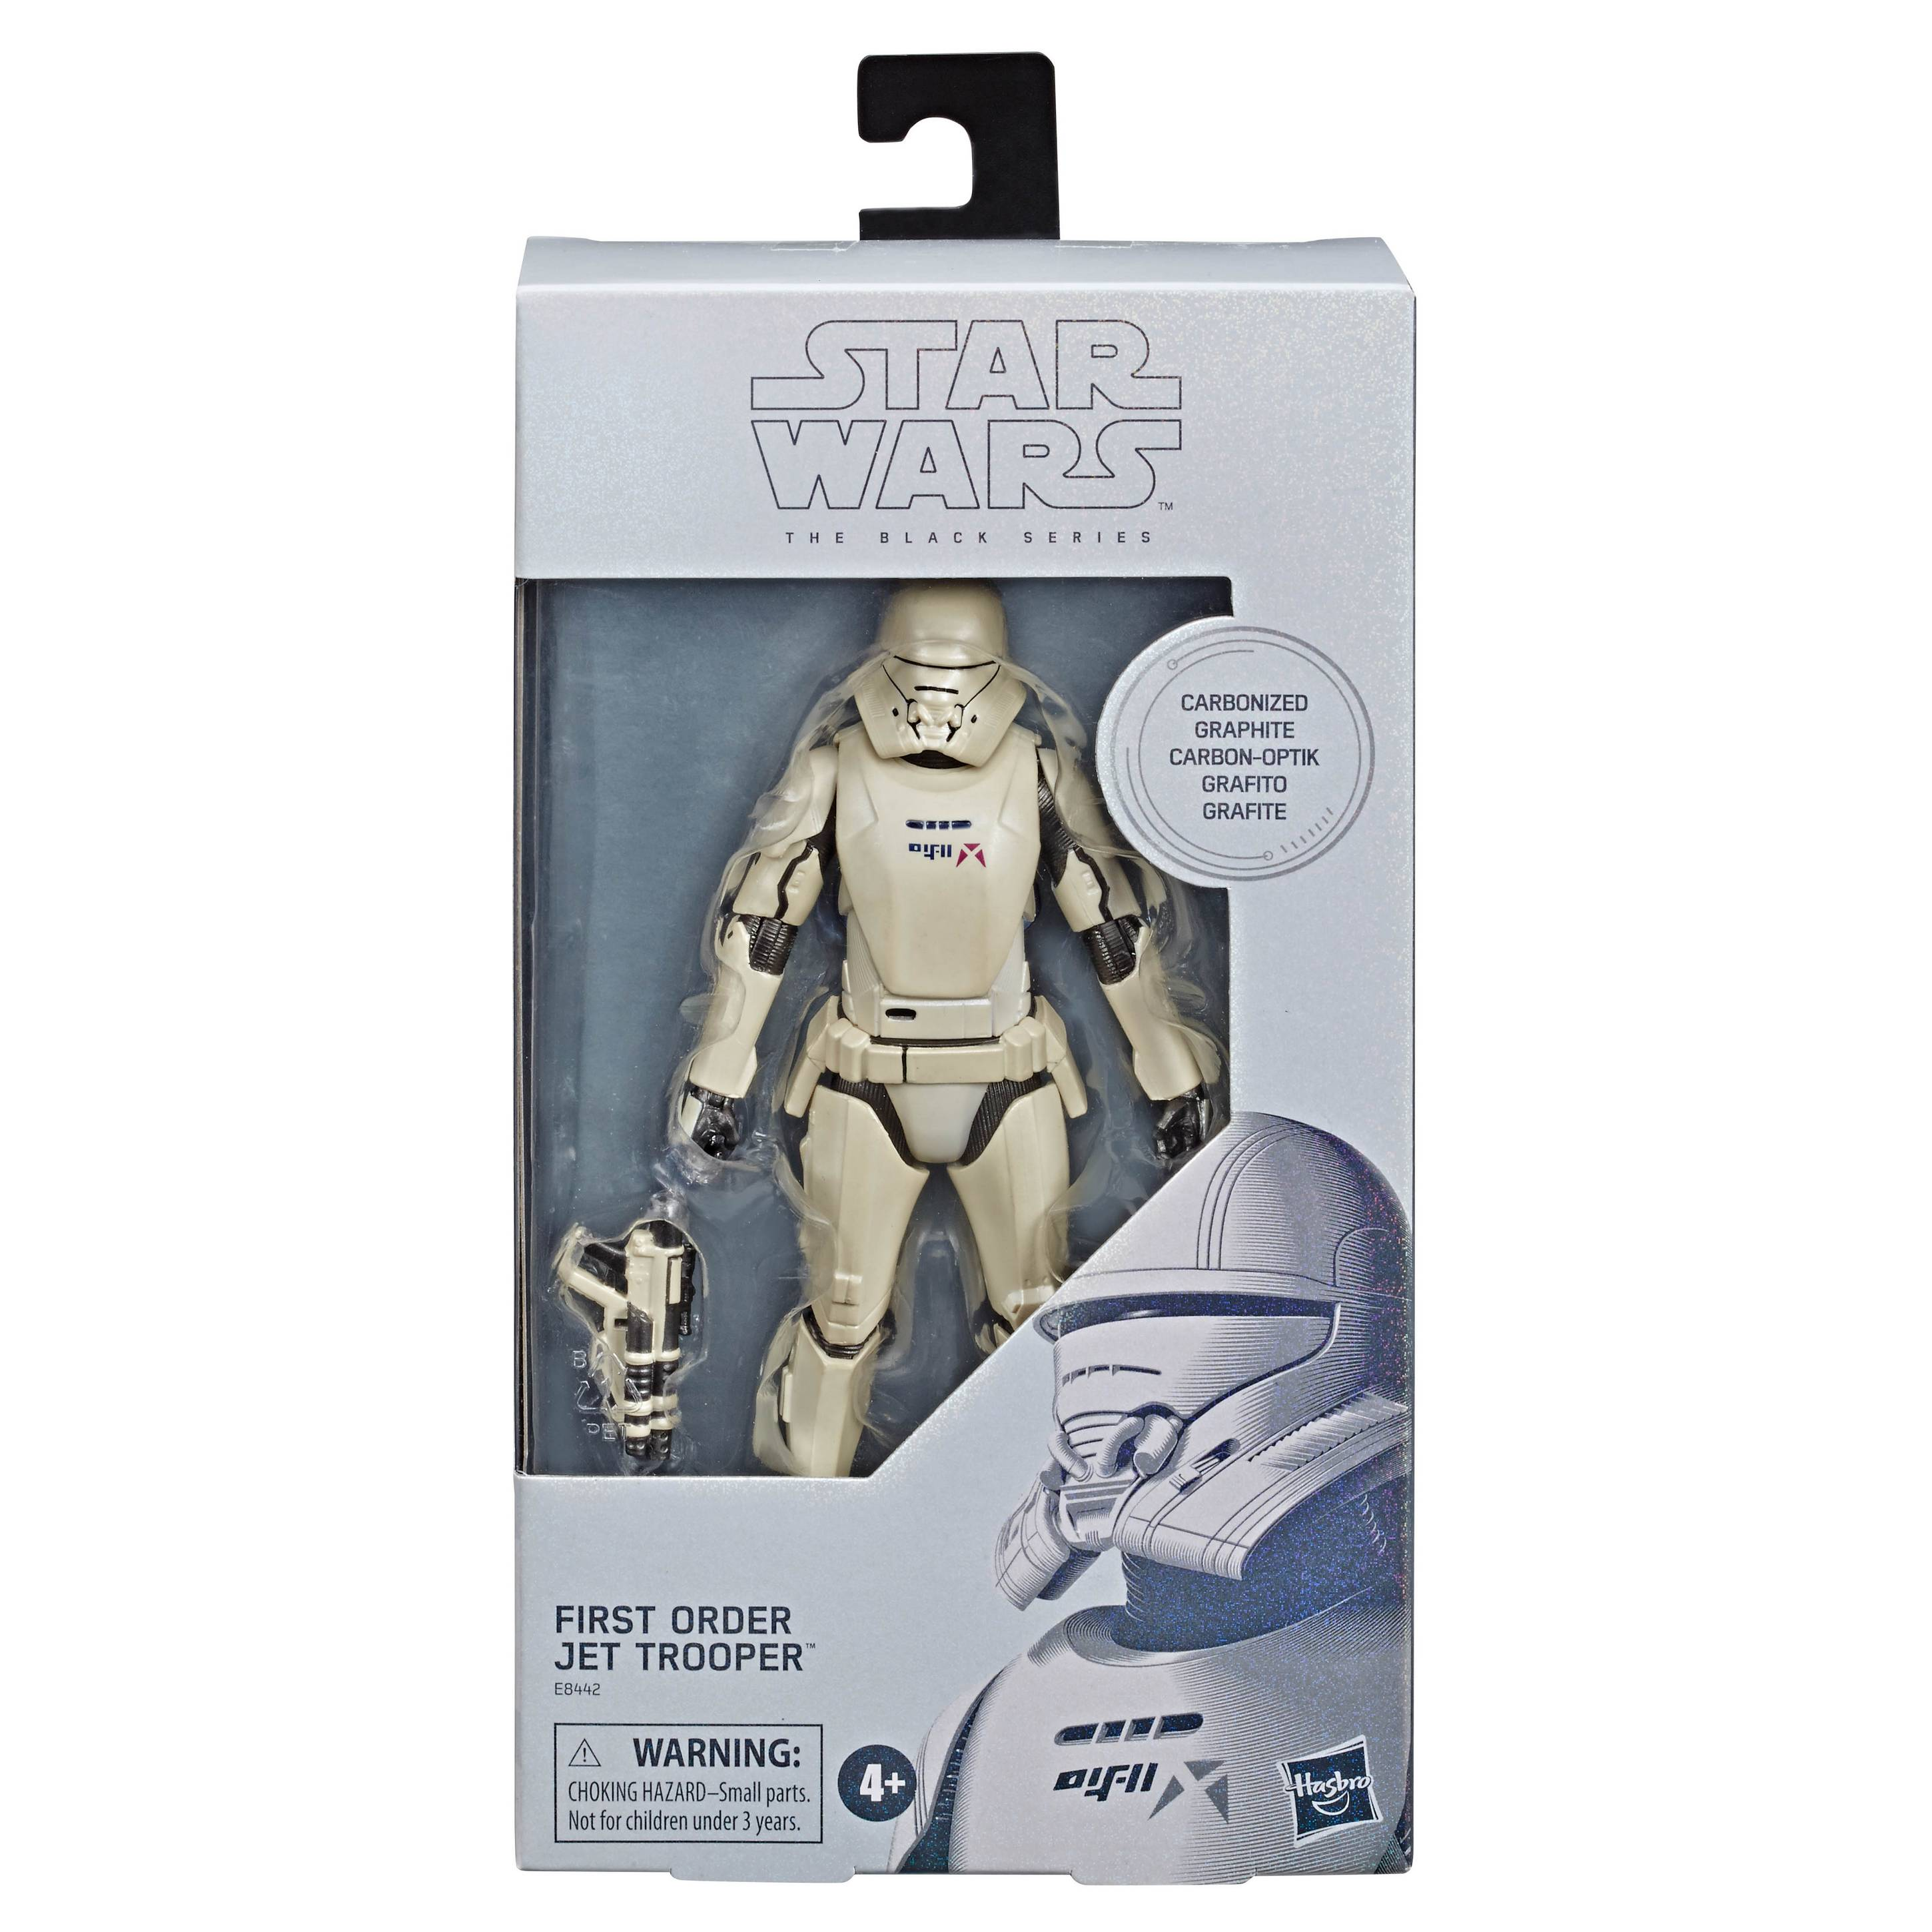 STAR-WARS-THE-BLACK-SERIES-6-INCH-FIRST-ORDER-JET-TROOPER-CARBONIZED-COLLECTION-Figure-in-pck.jpg